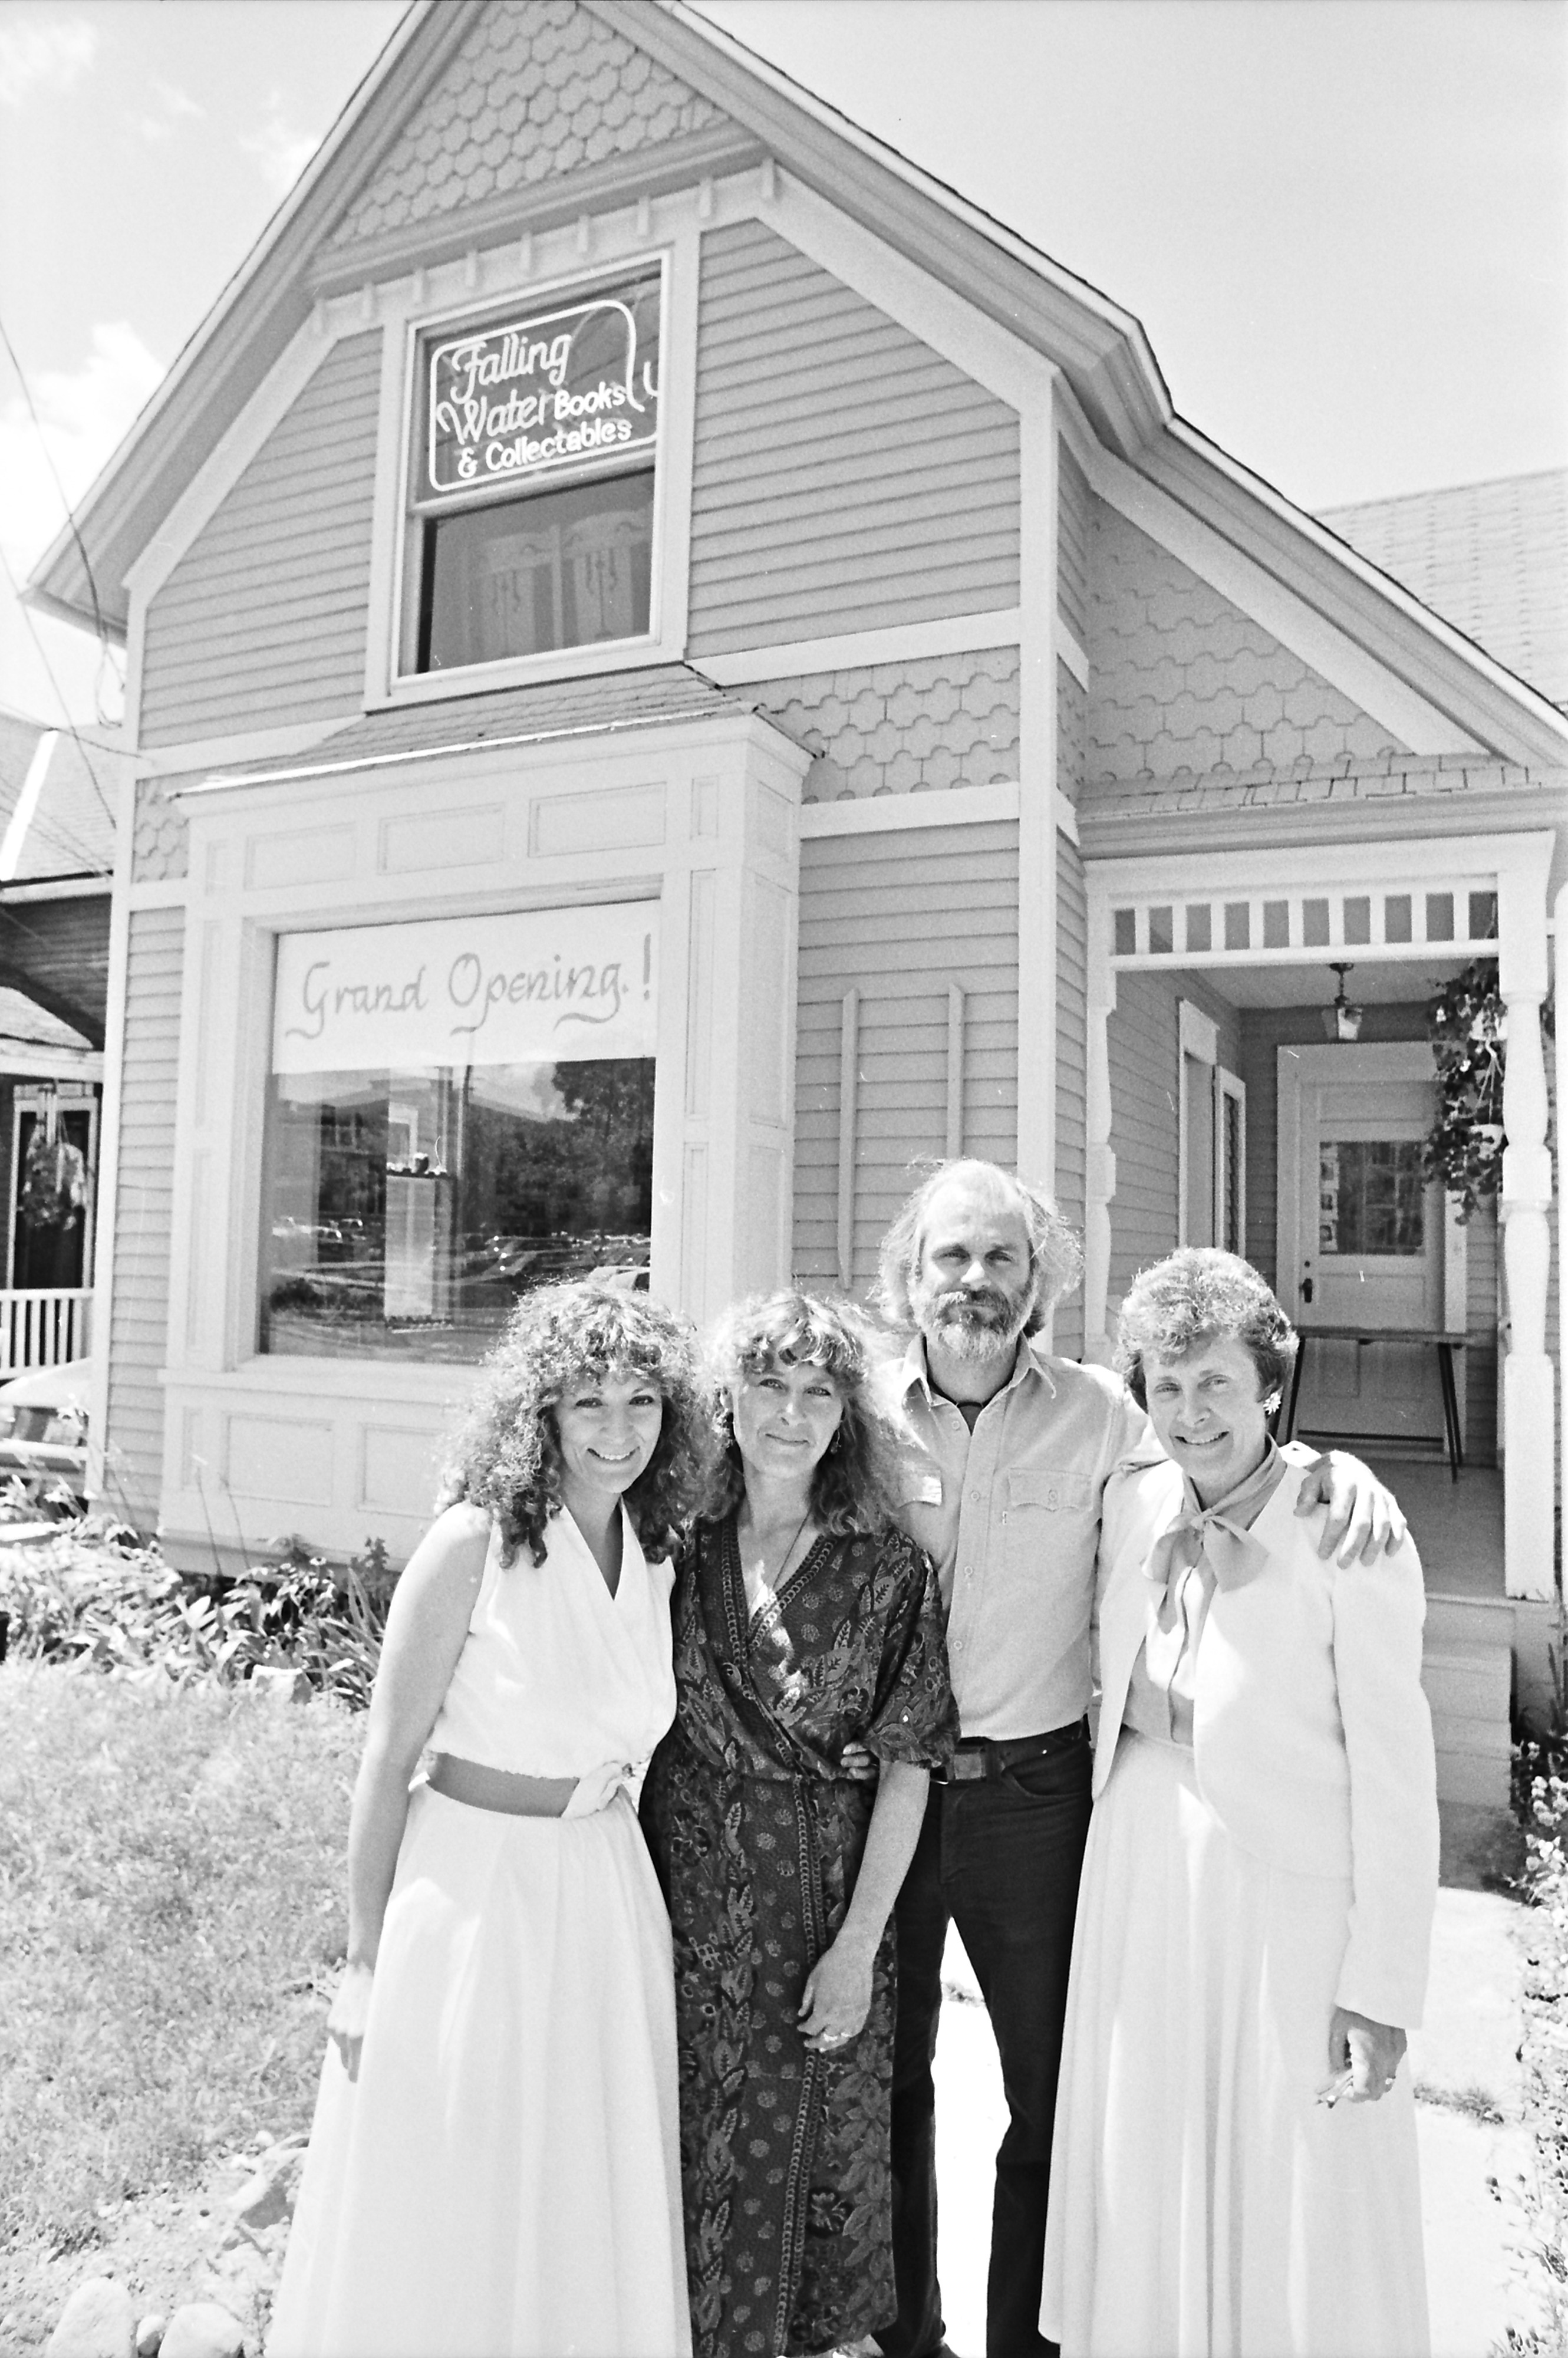 Owners in front of Falling Water Books & Collectibles, Ann Arbor, July 1988 image